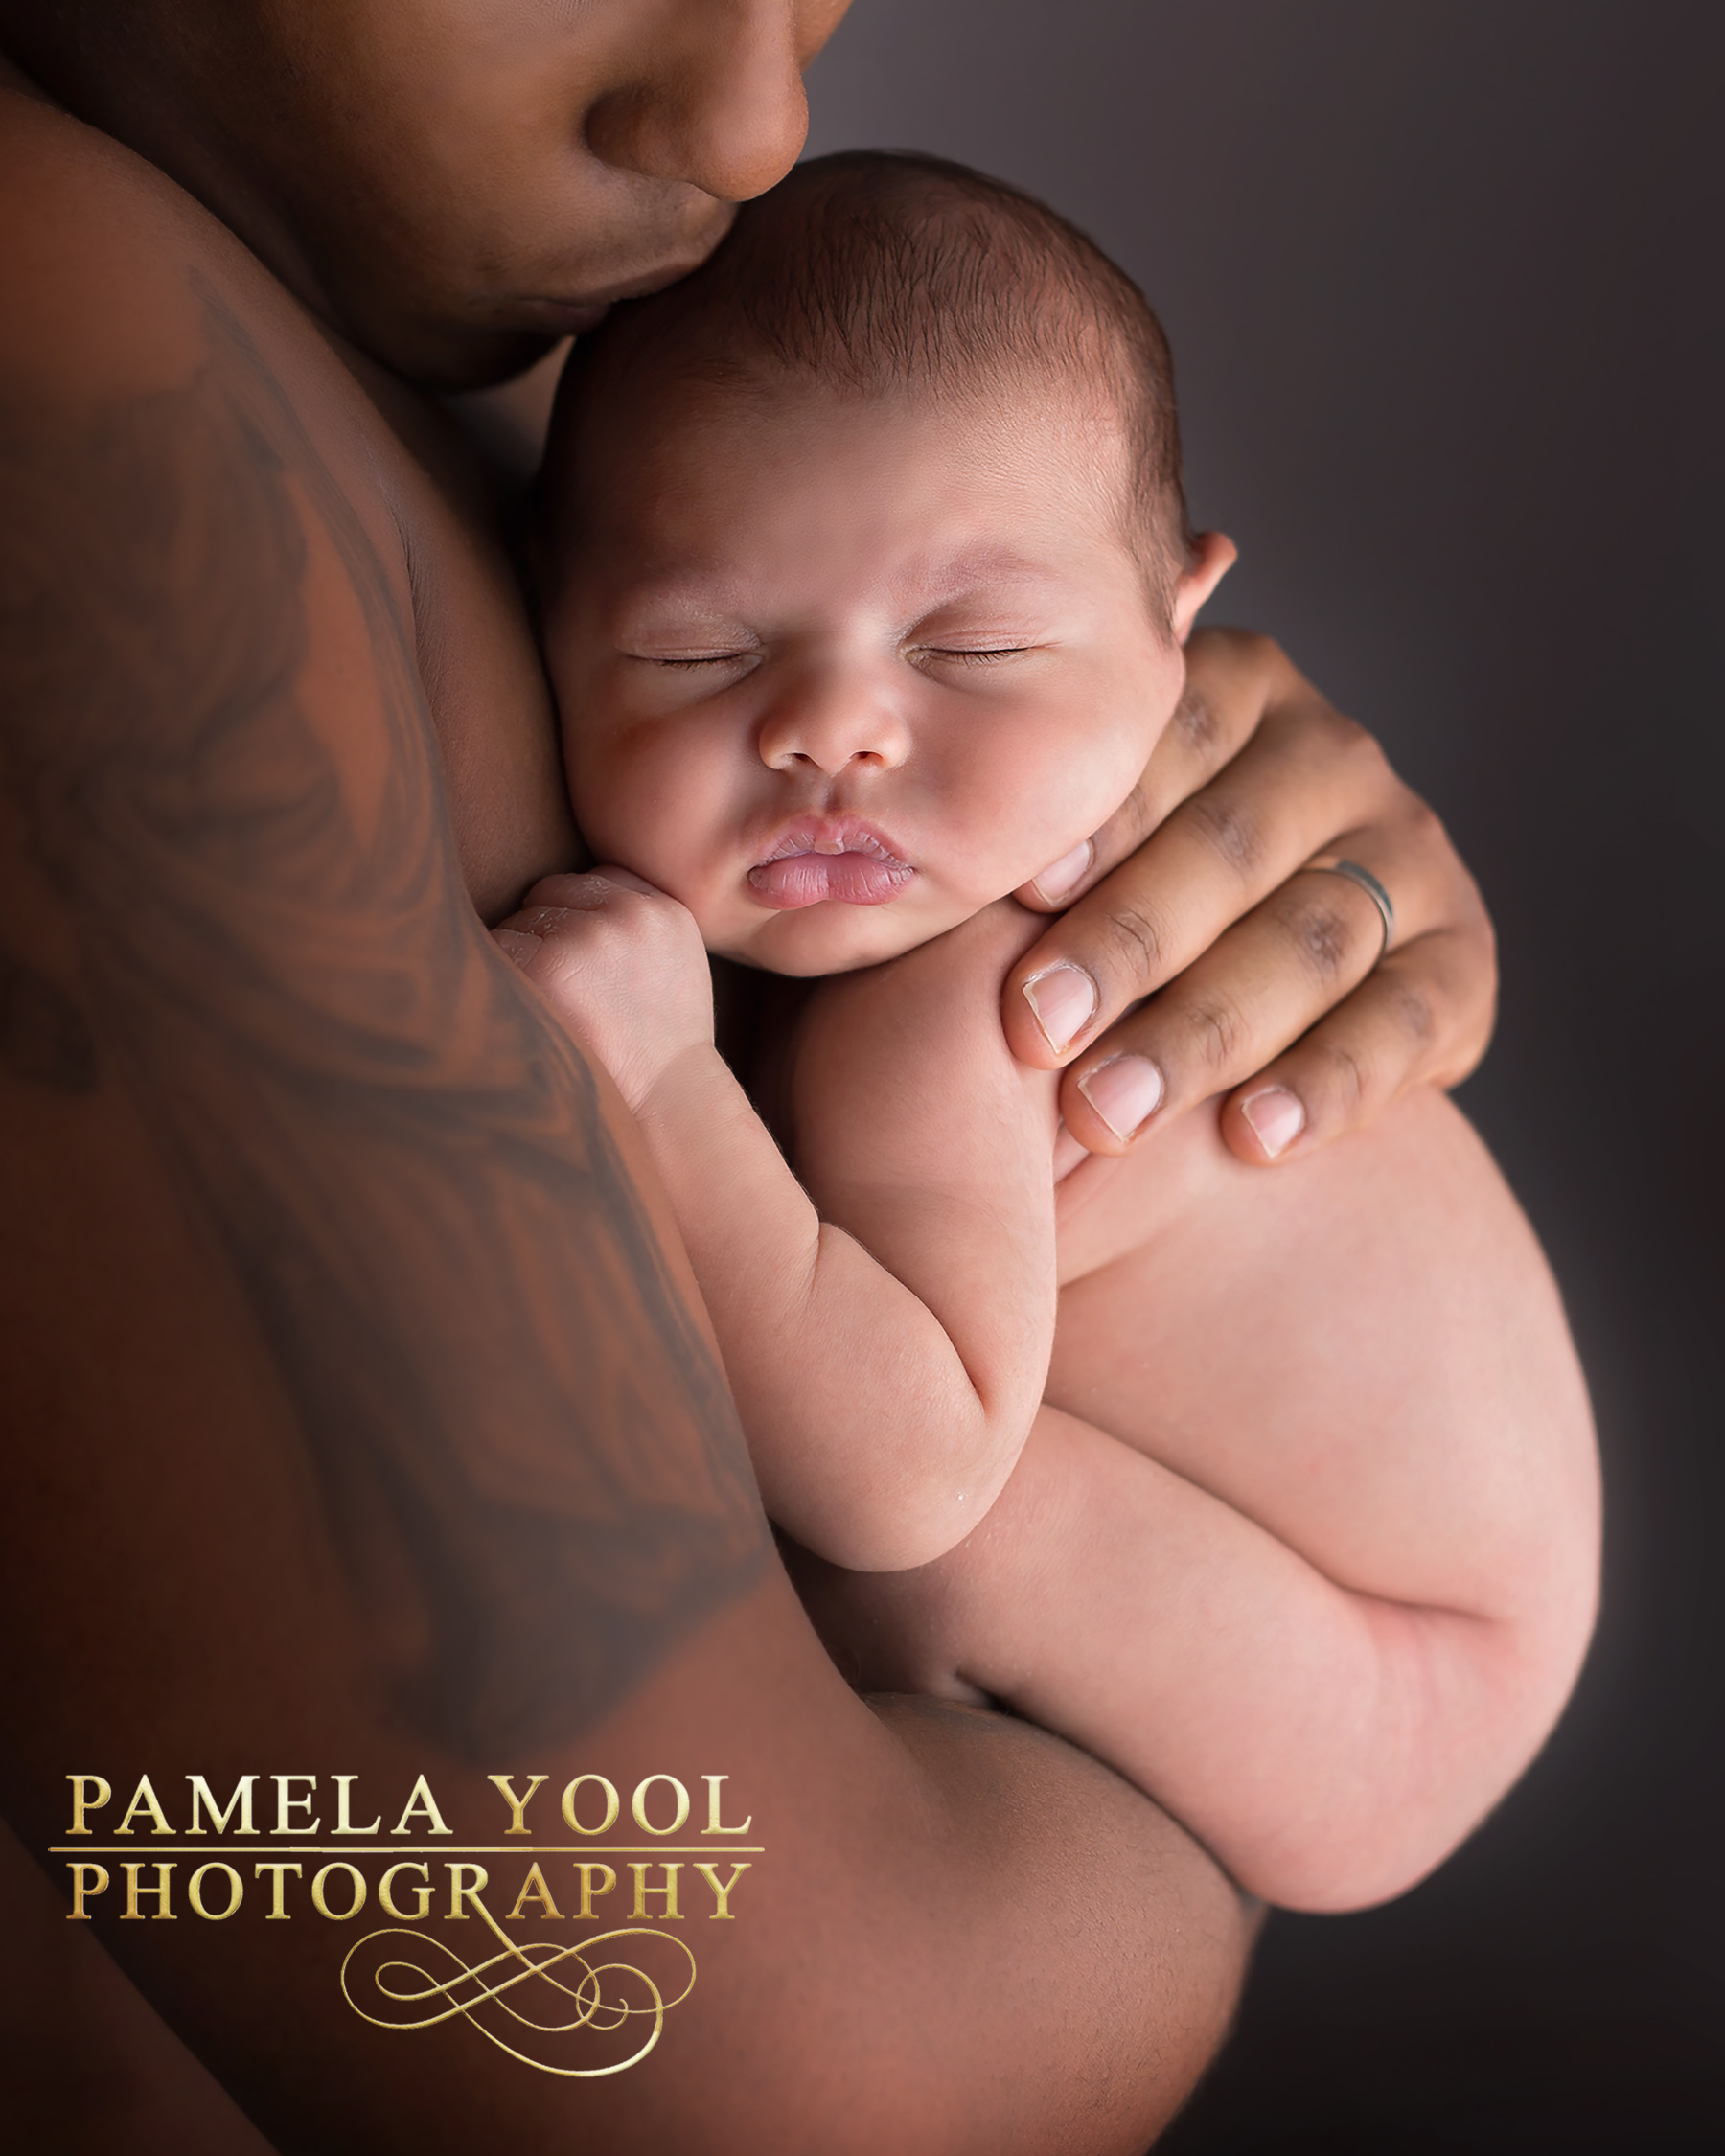 Awarded Best Newborn Photographer